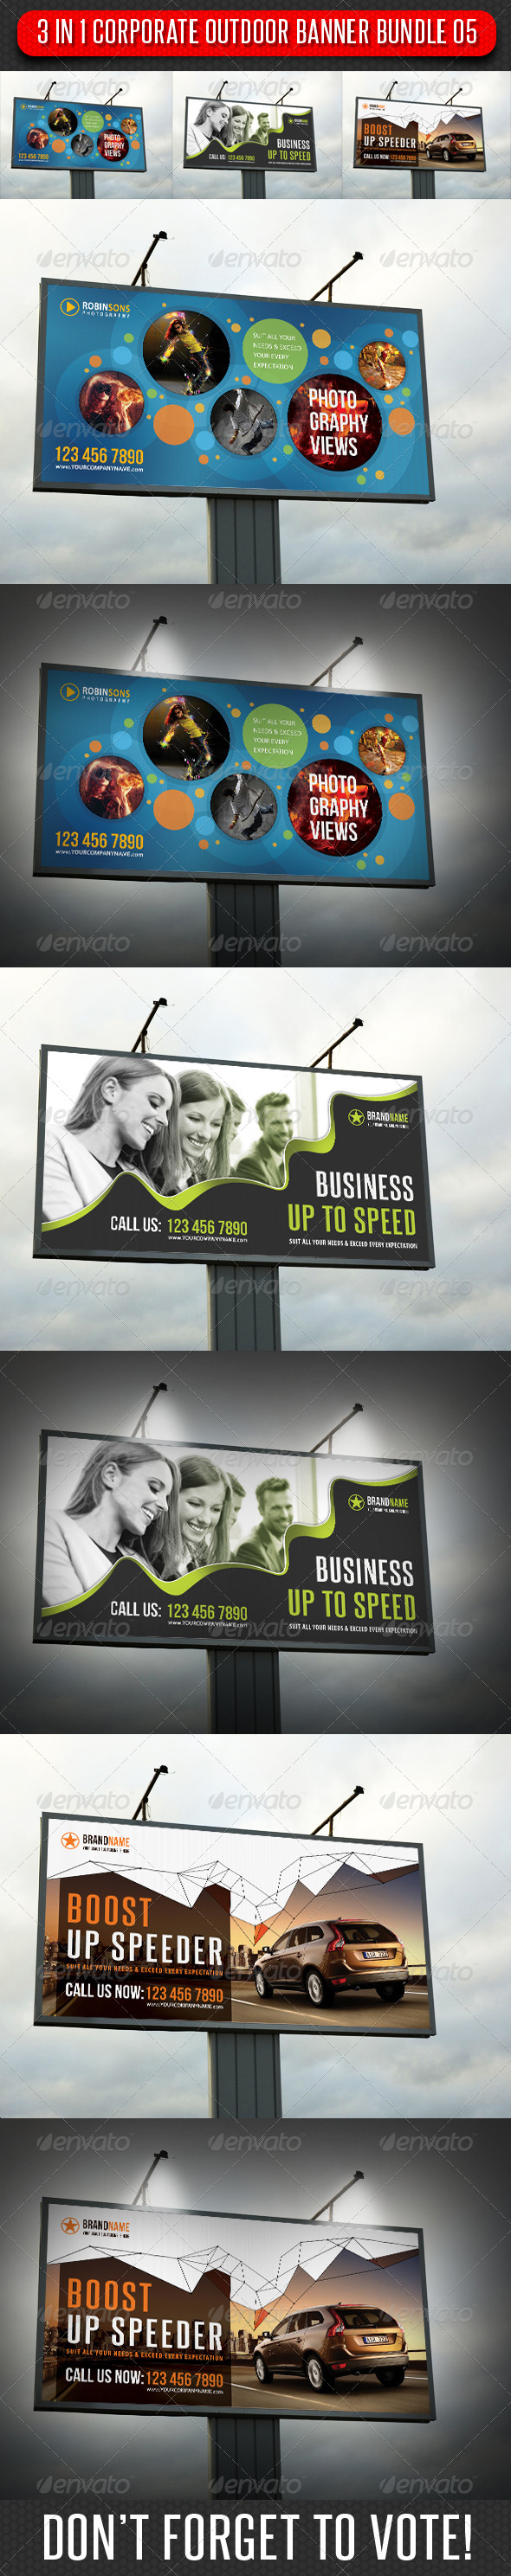 GraphicRiver 3 in 1 Corporate Outdoor Banner Bundle 05 6647823